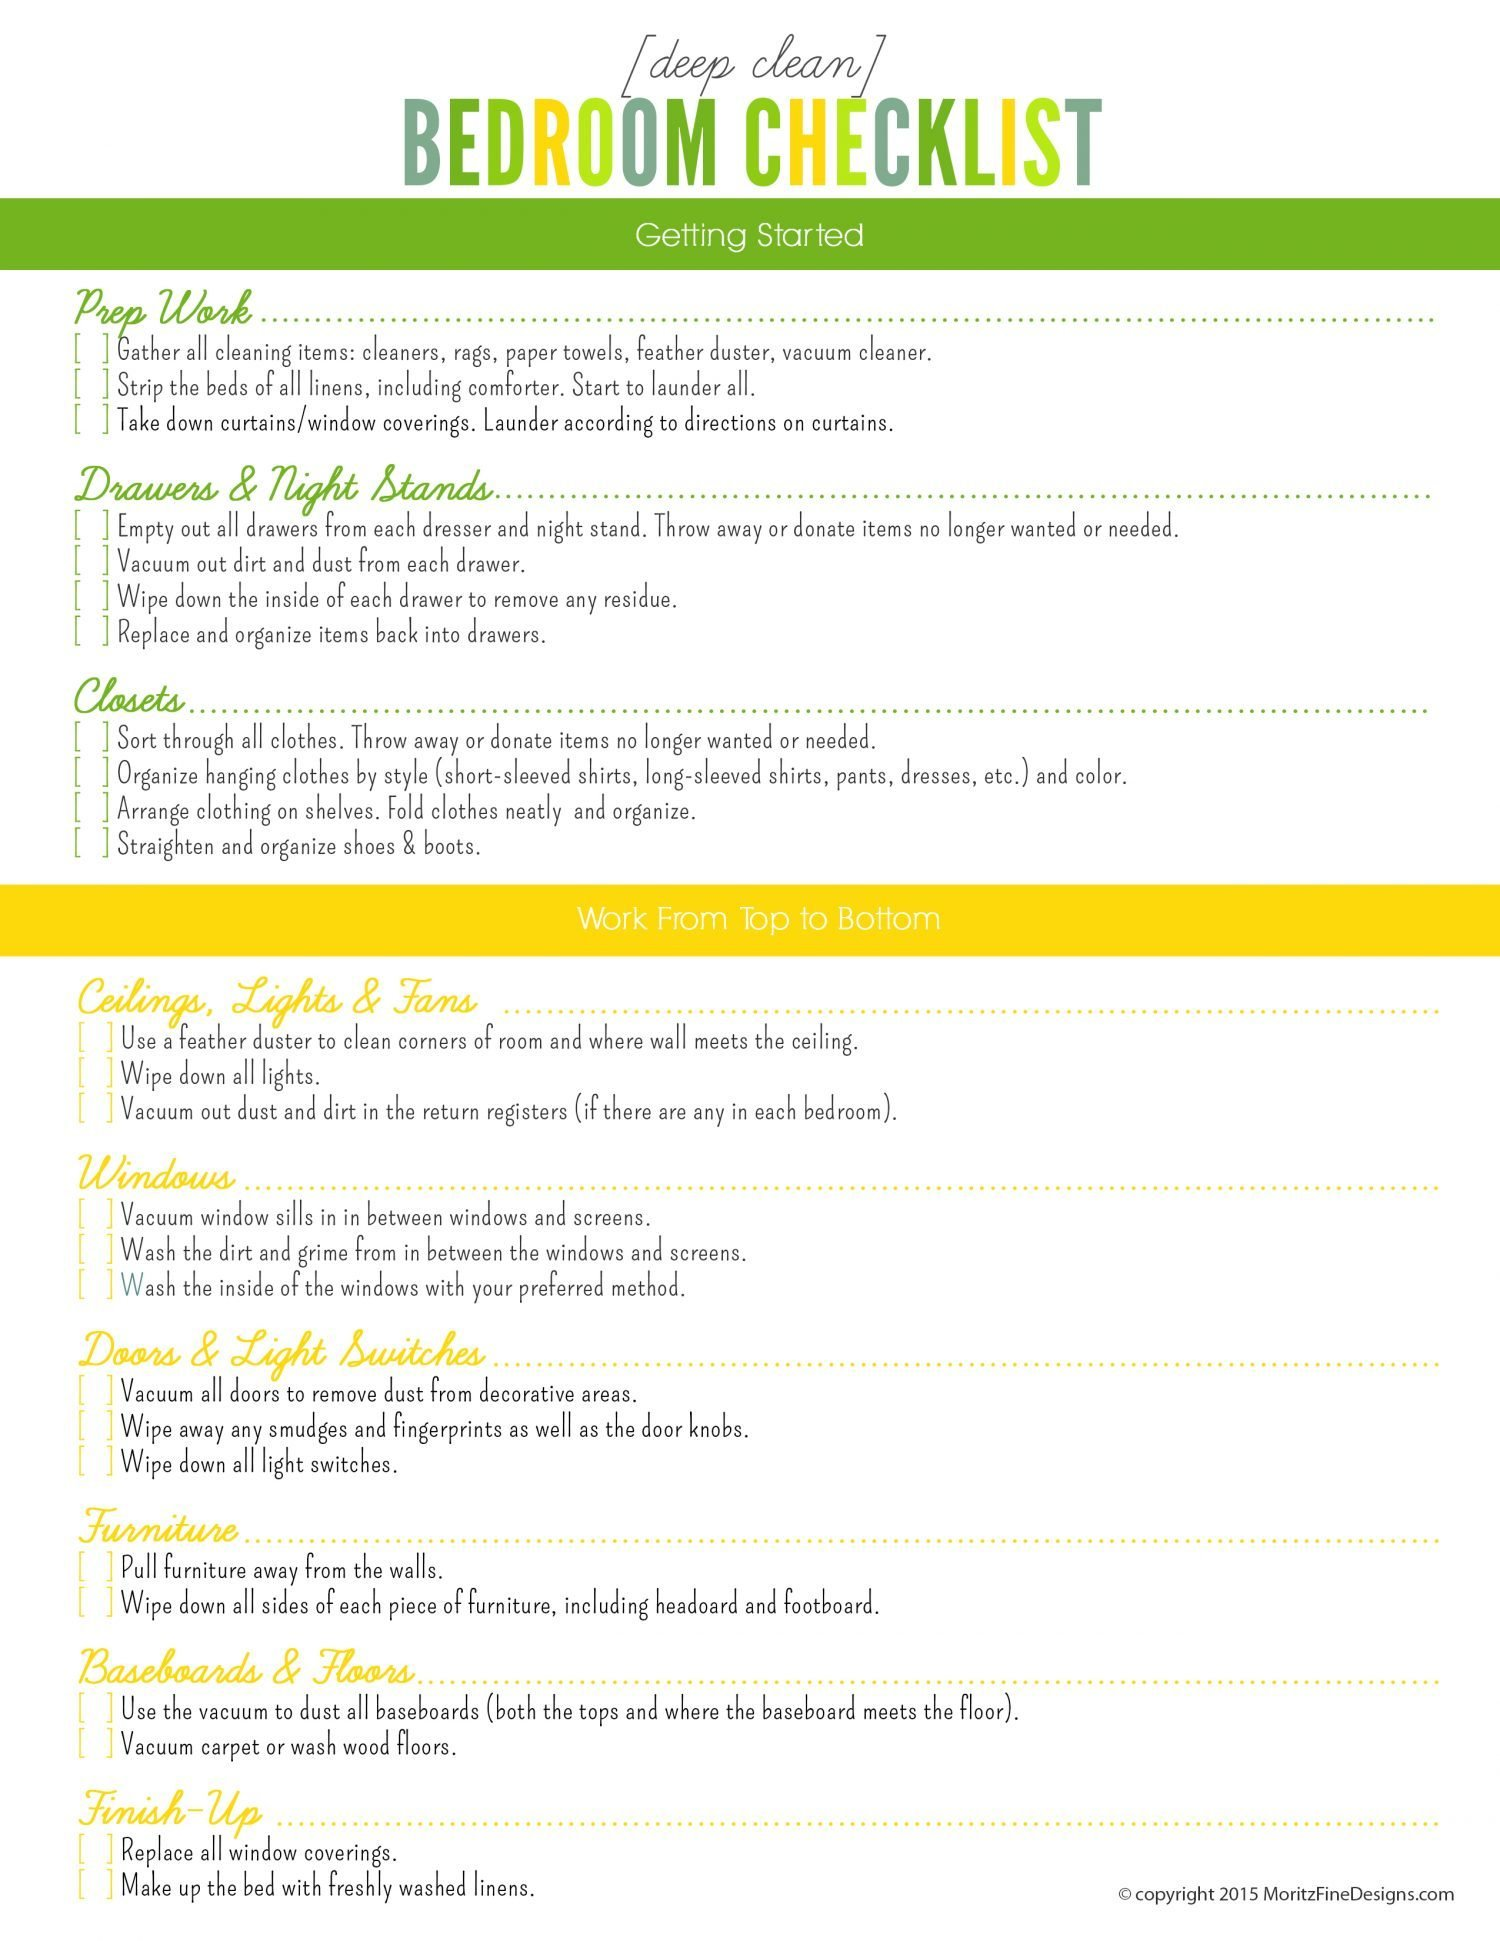 Best Deep Clean Bedroom Checklist Free Printable Included With Pictures